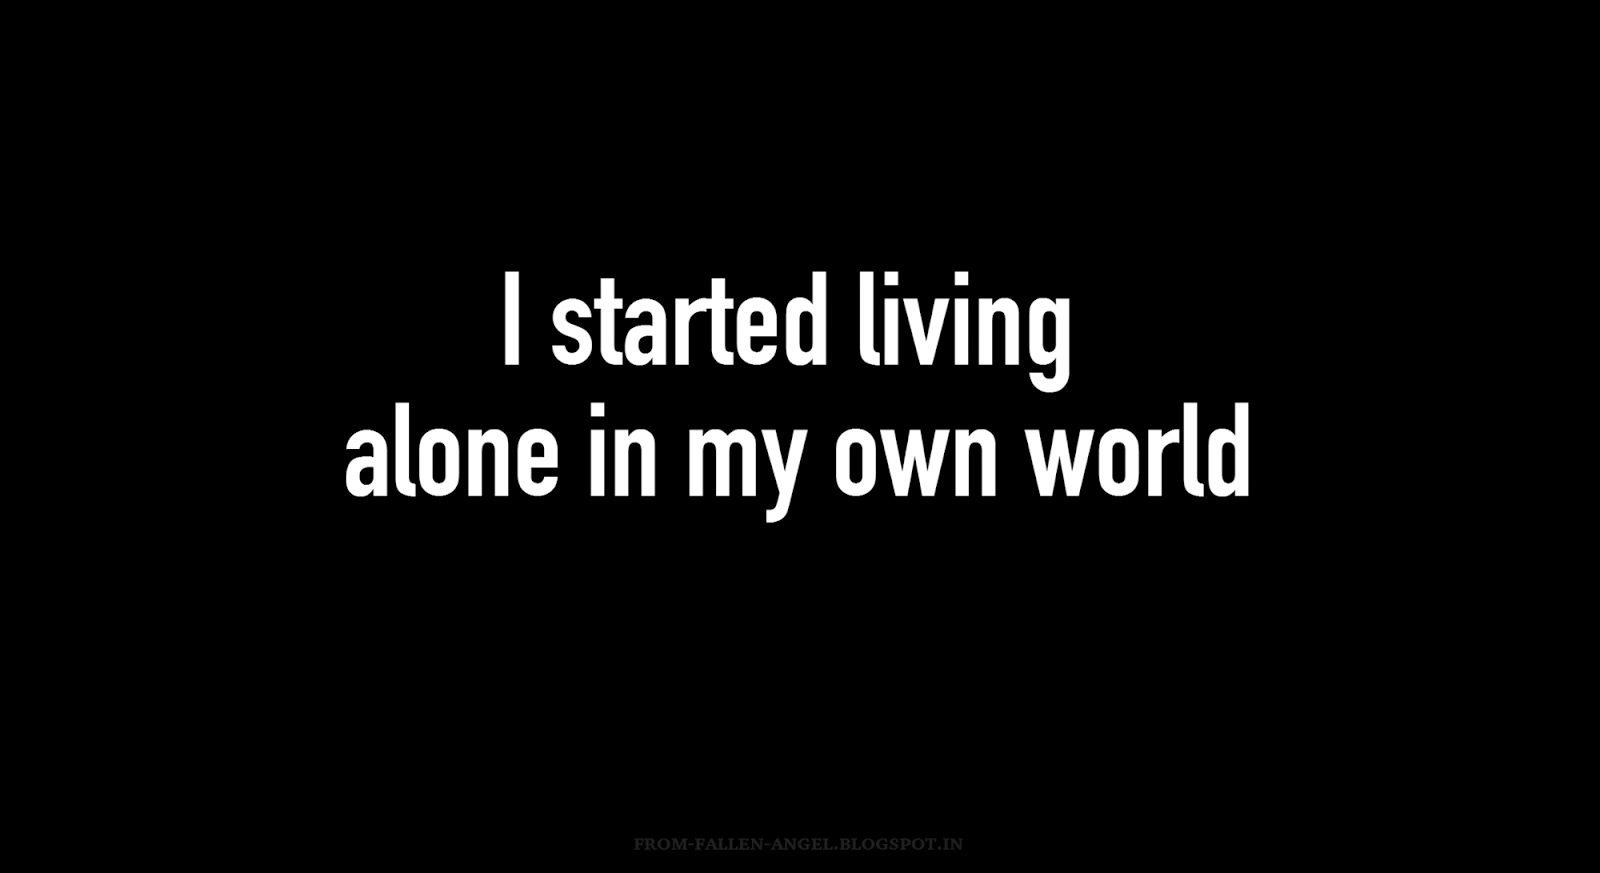 I started living alone in my own world